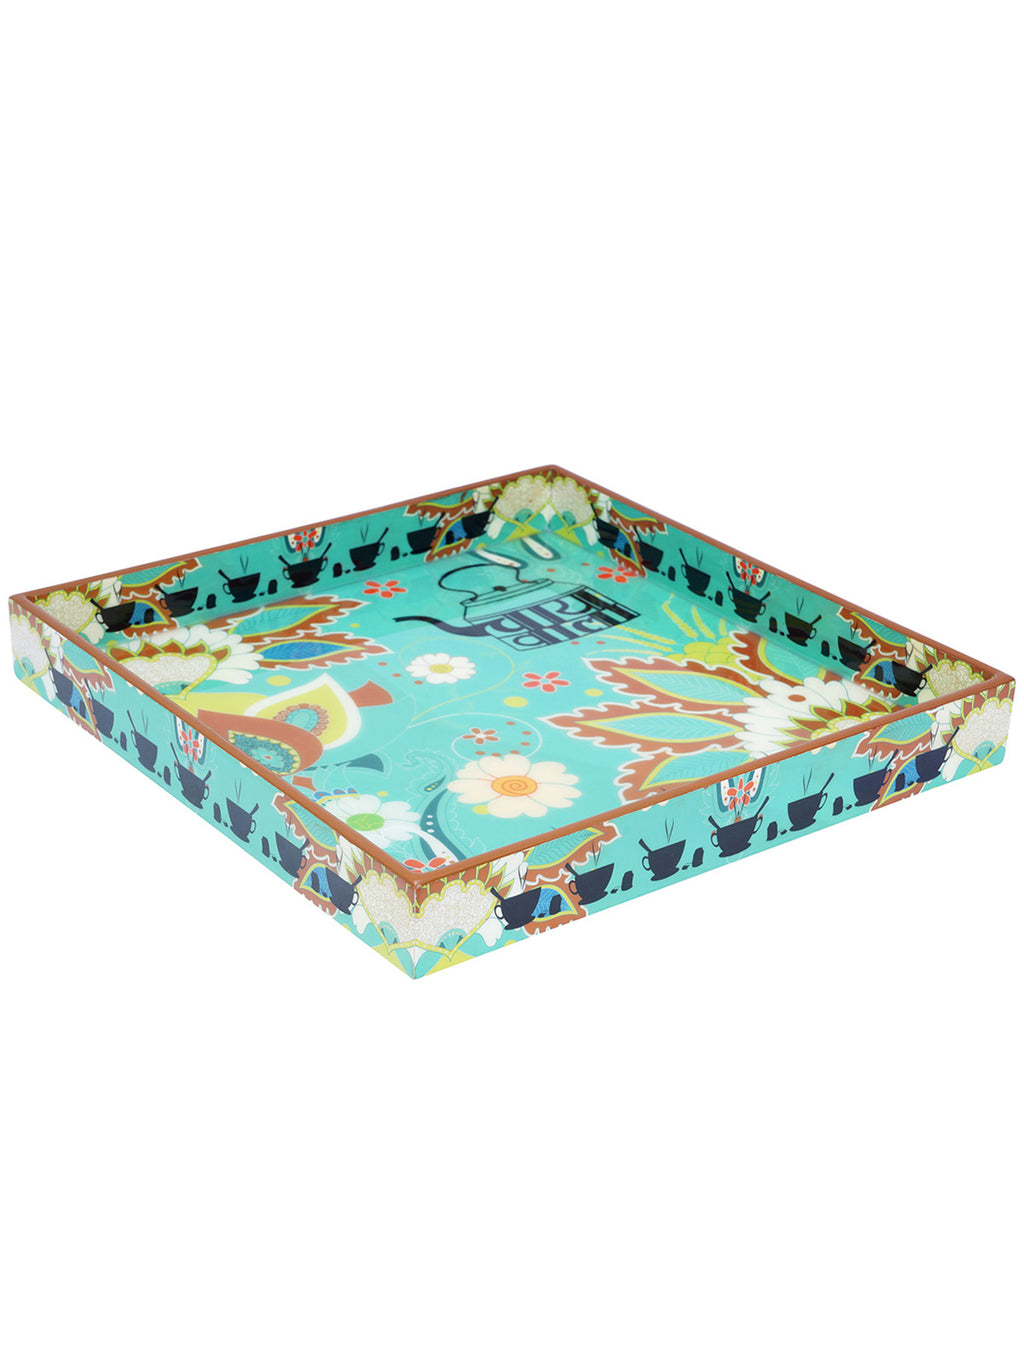 Handcrafted Chaiwala Serving Tray